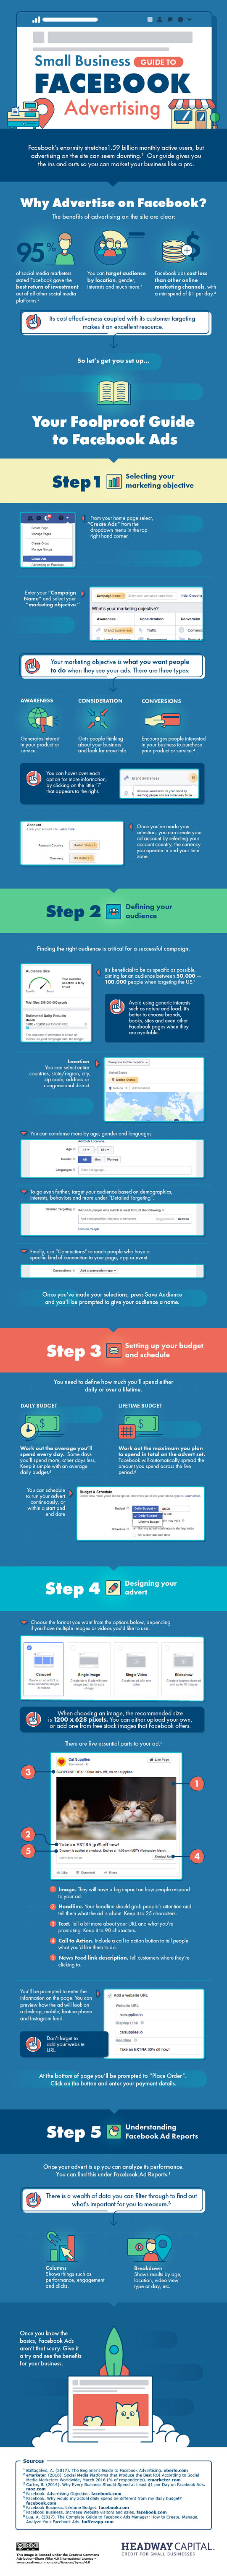 An All-In-One Guide To Facebook Advertising (Infographic)